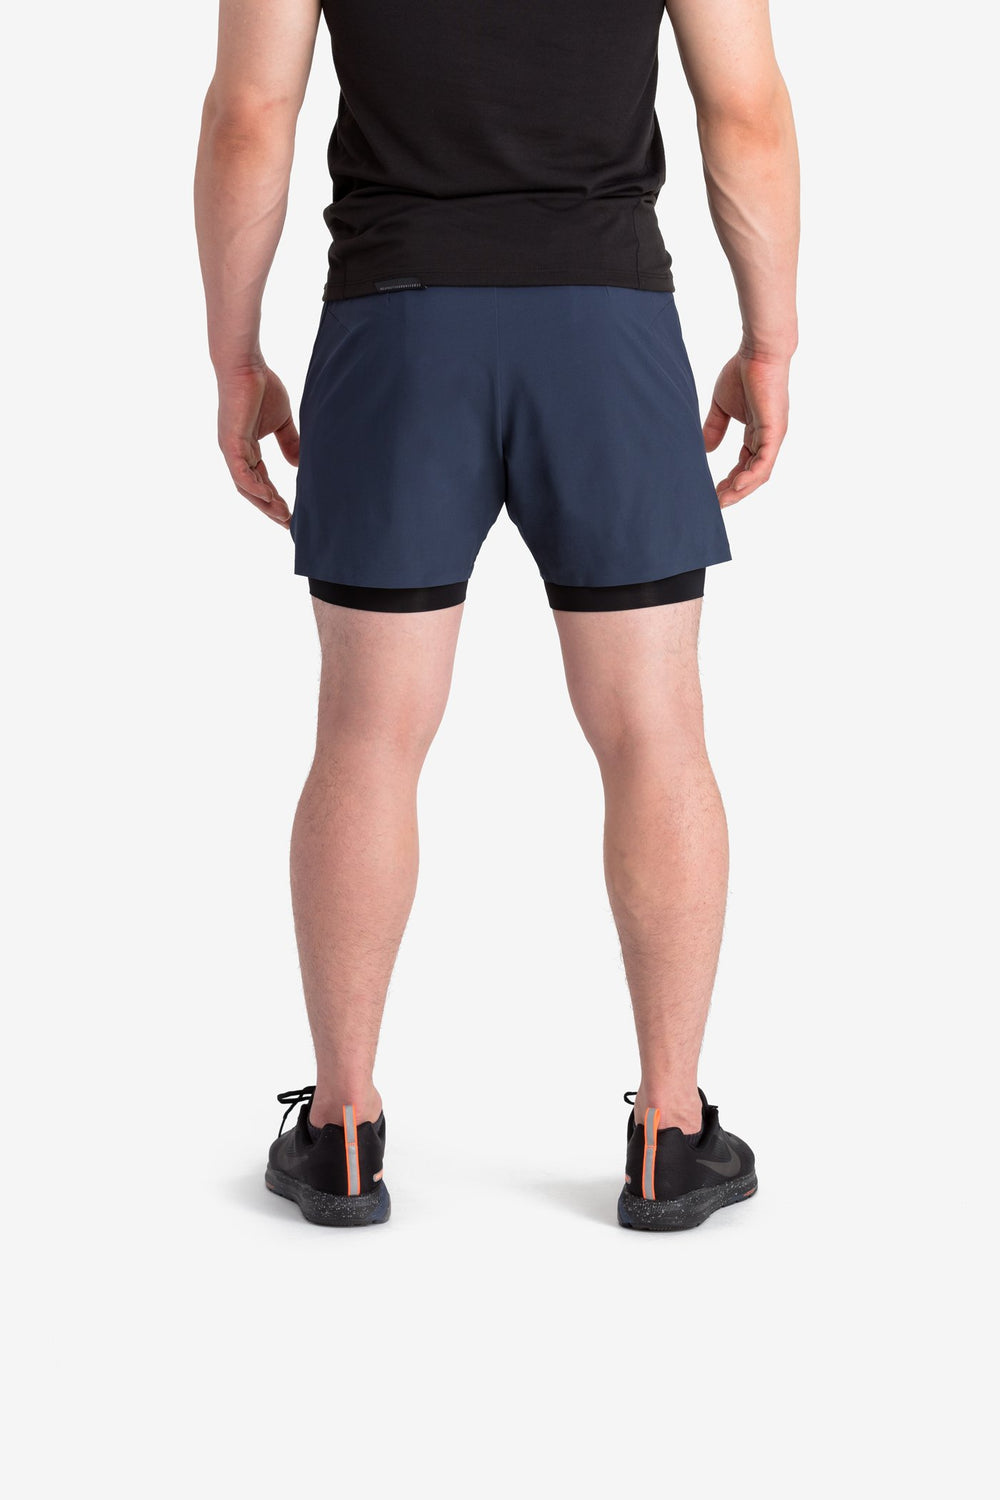 RYU Mens Vector Short in Blackened Navy